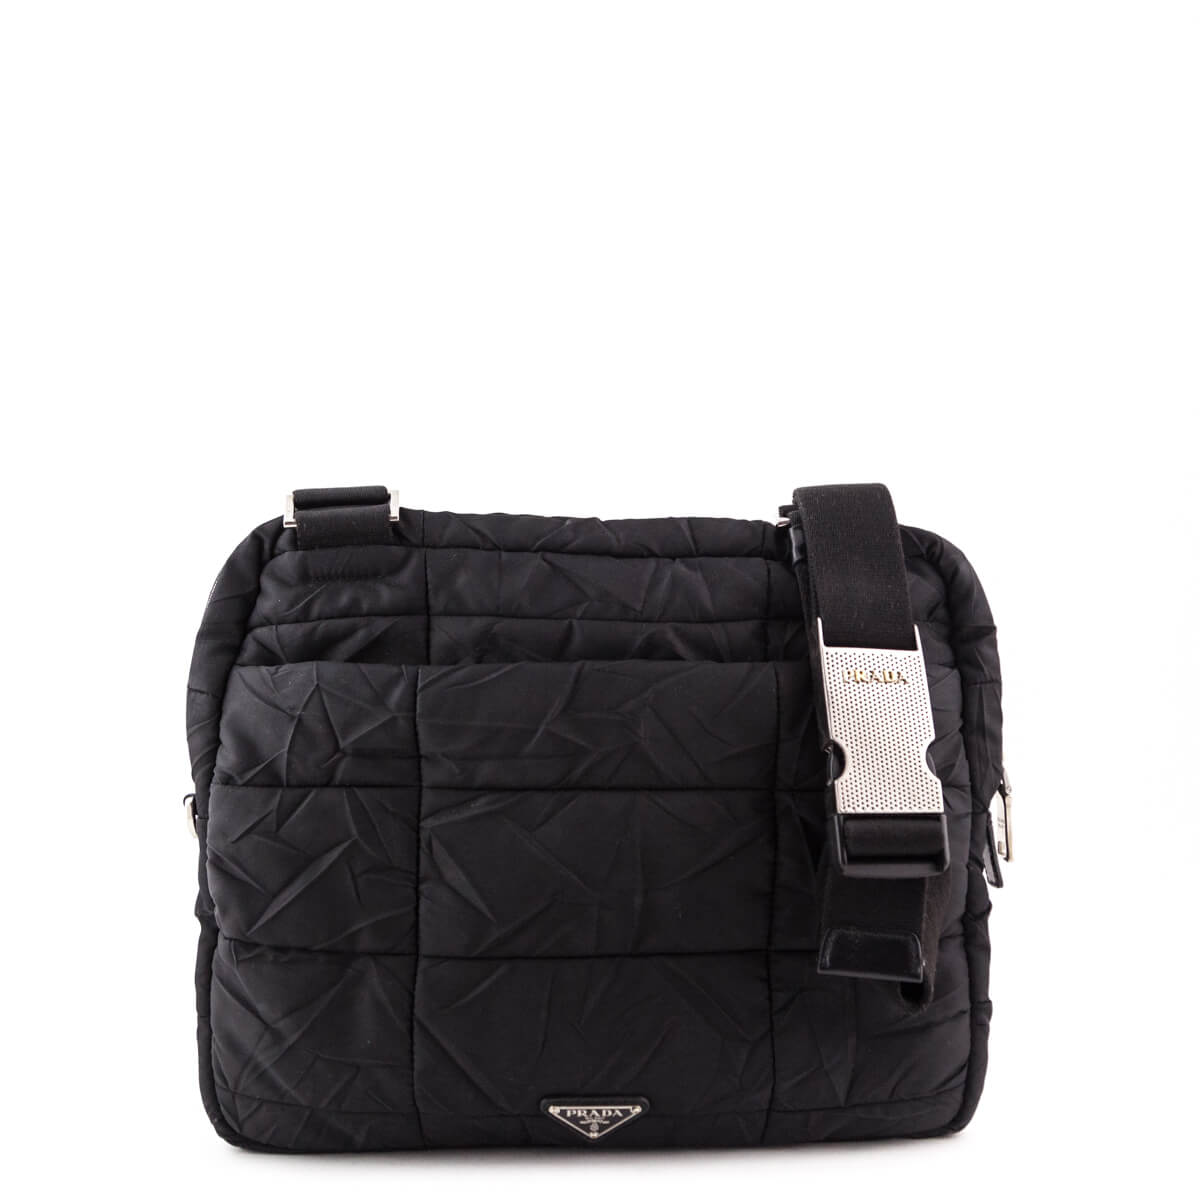 Prada Black Quilted Nylon Bag - LOVE that BAG - Preowned Authentic Designer  Handbags ... 3ef84a0127cf5